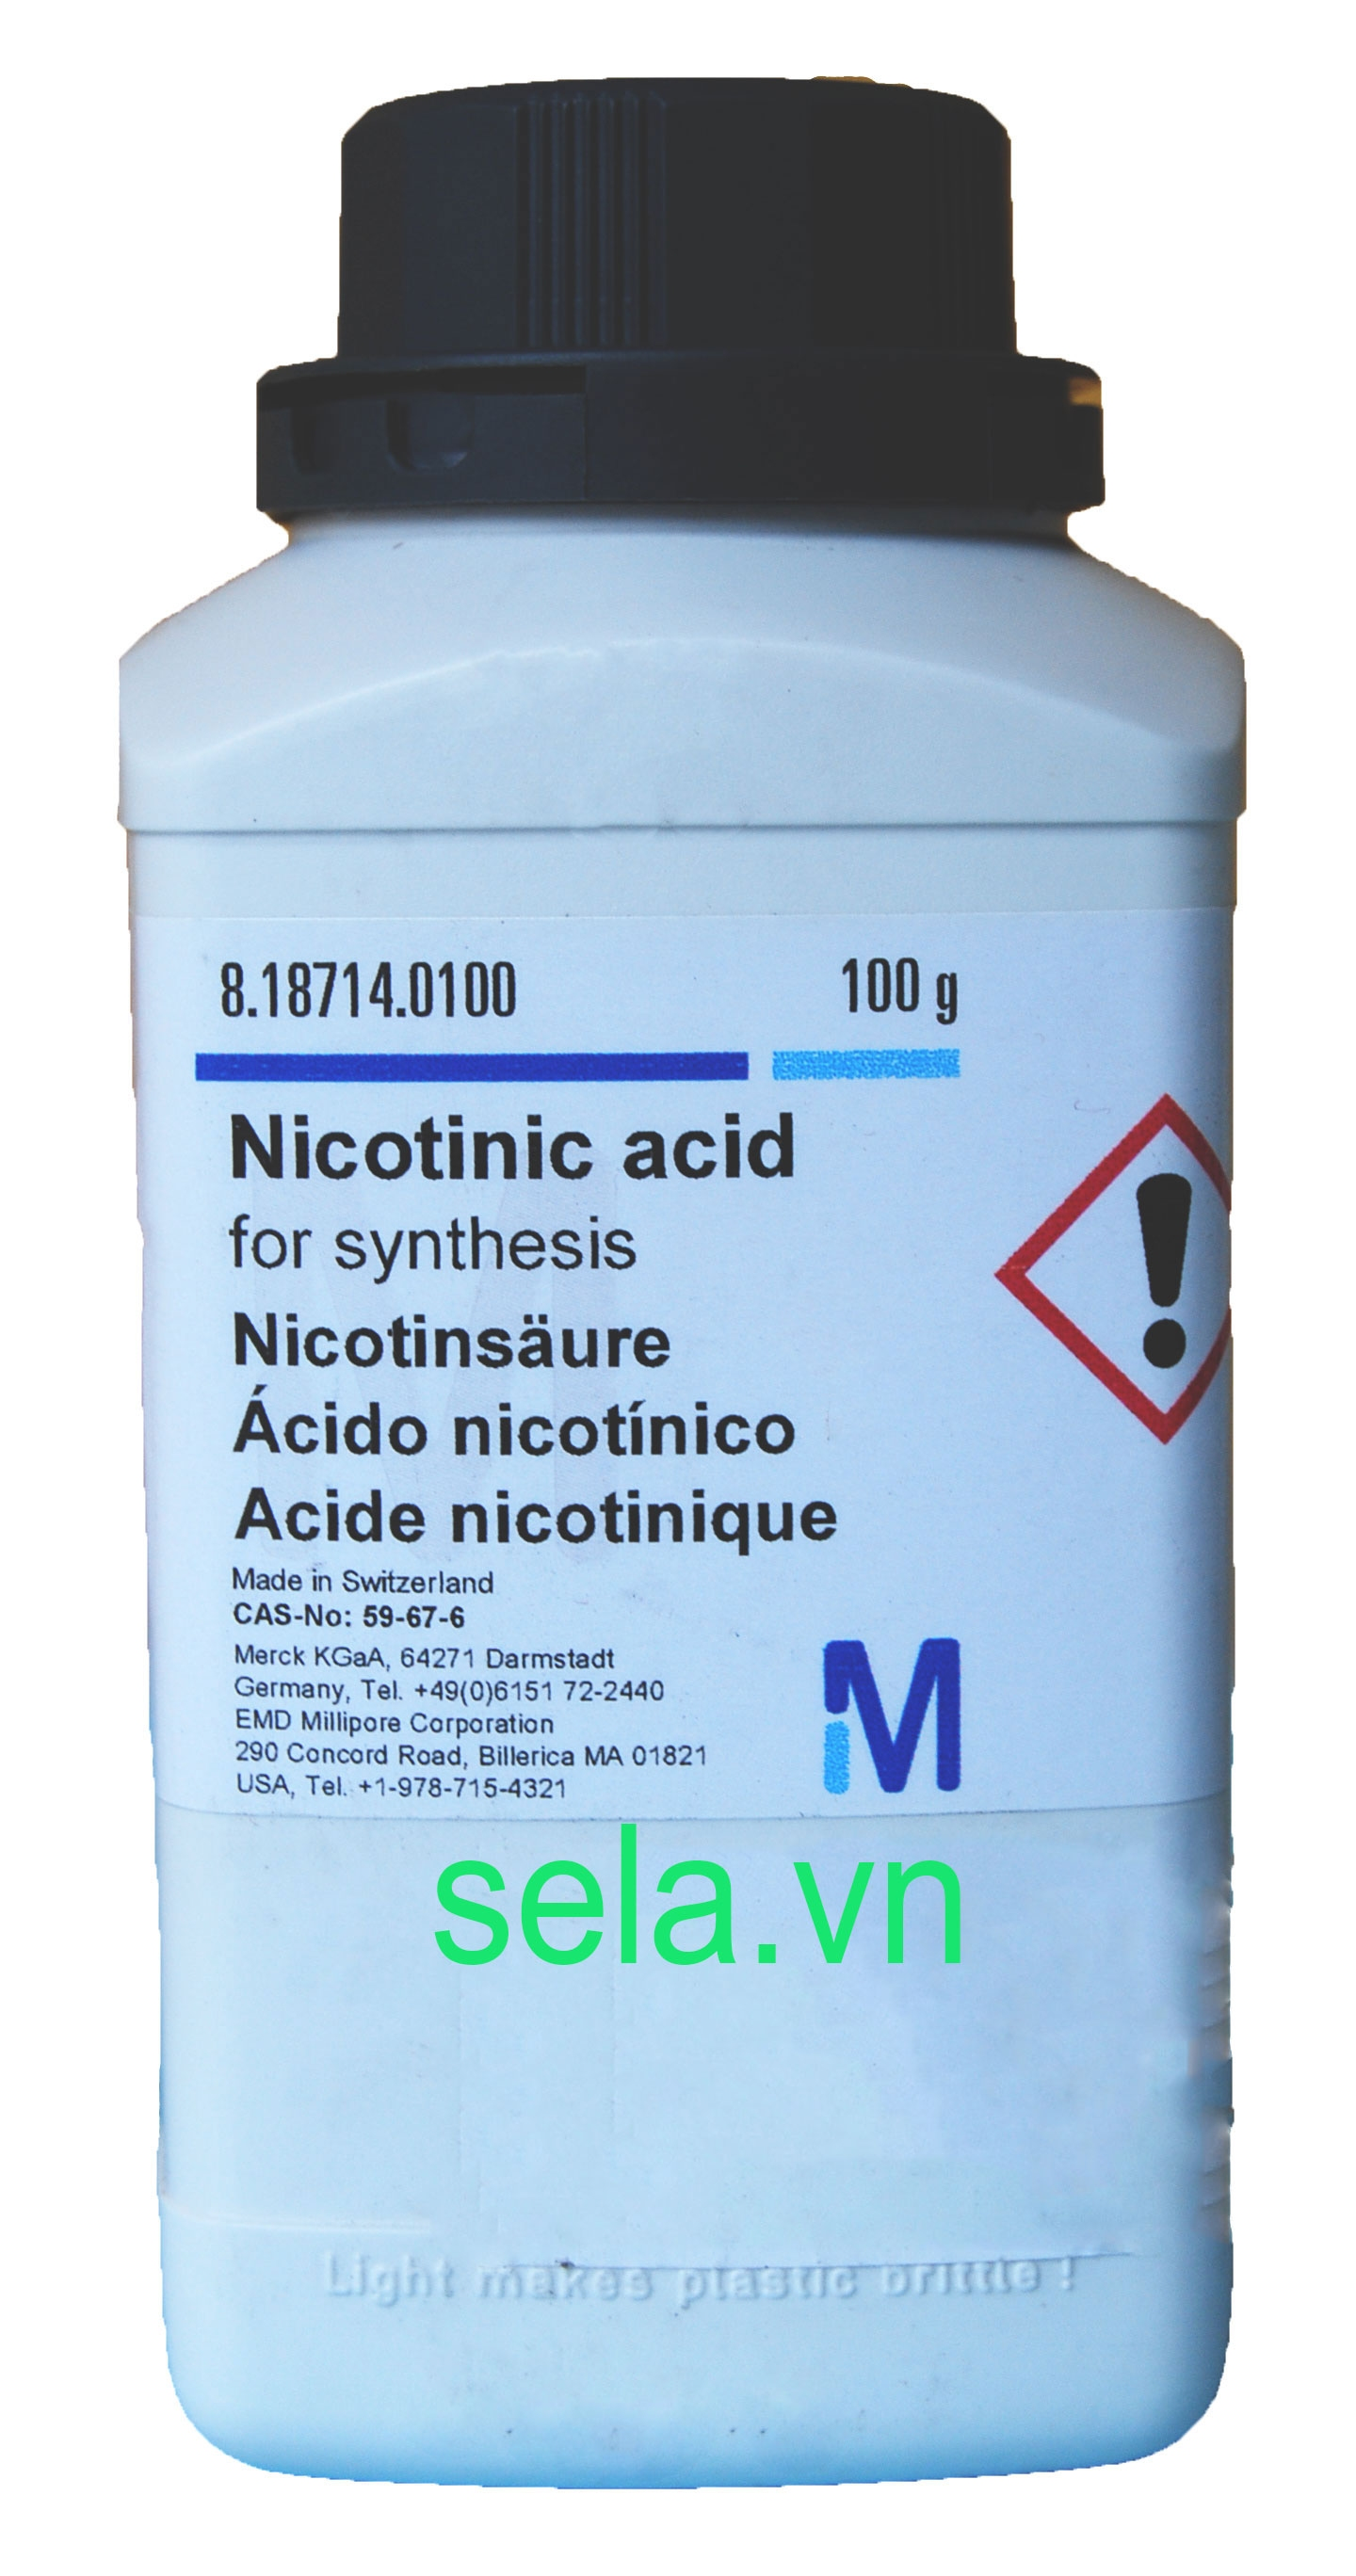 Nicotinic acid for synthesis